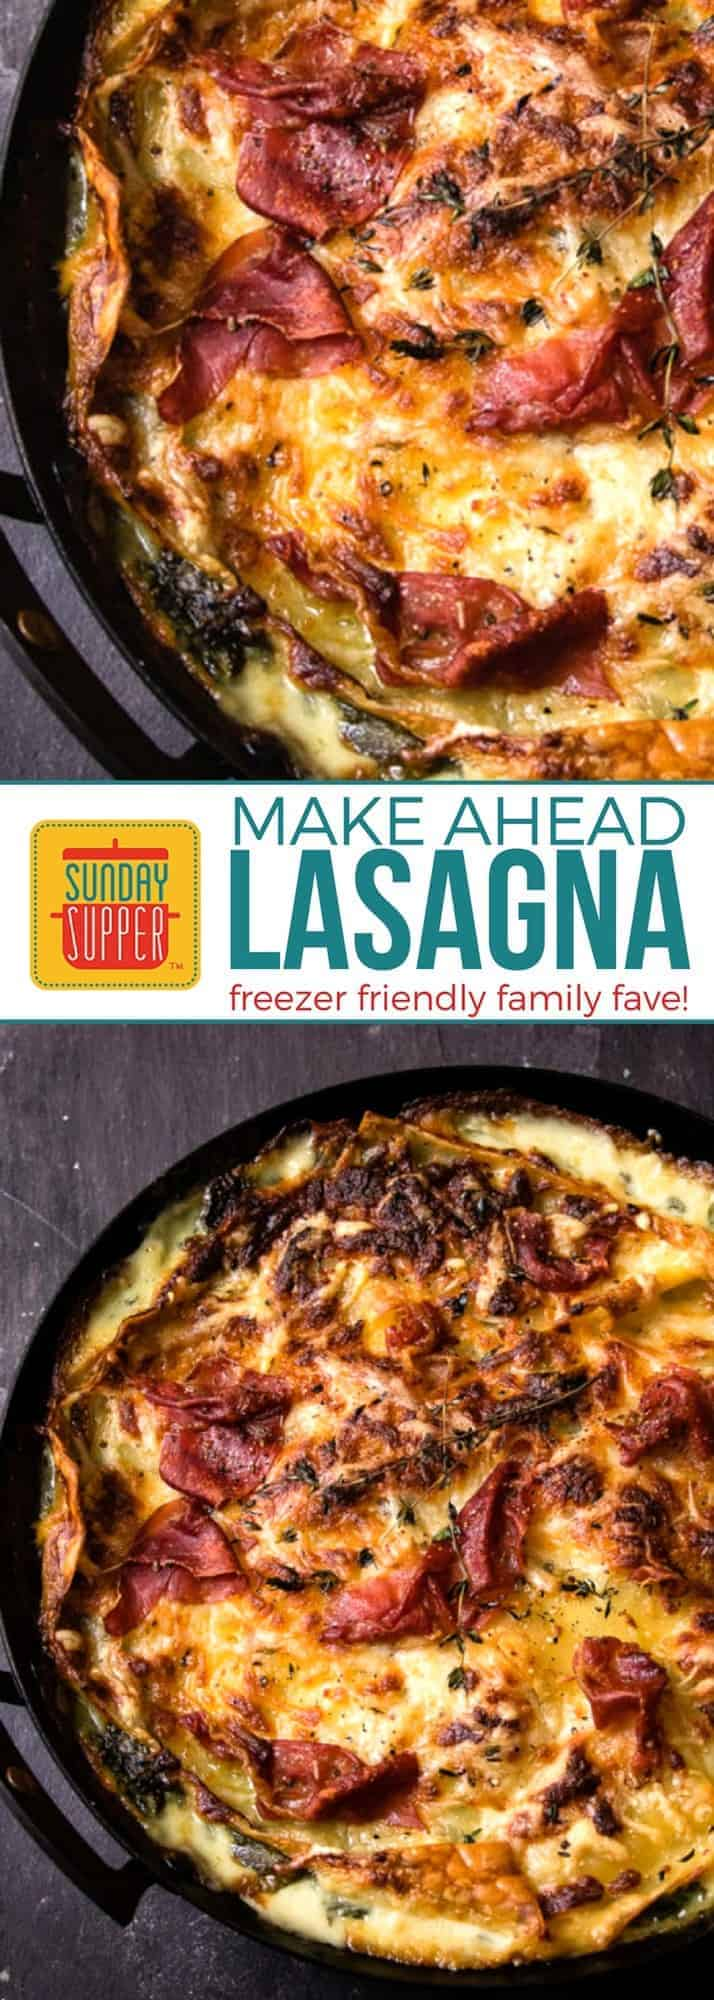 Start the new year healthy & organized! Add this HEALTHIER MAKE AHEAD LASAGNA recipe to your meal planning list. A hearty, cheesy, healthier lasagna recipe loaded with cheese and spinach and is freezer friendly too! This easy recipe will quickly become a family favorite! #SundaySupper #HealthyLasagna #MakeAheadFreezerMeal #FamilyFavorite